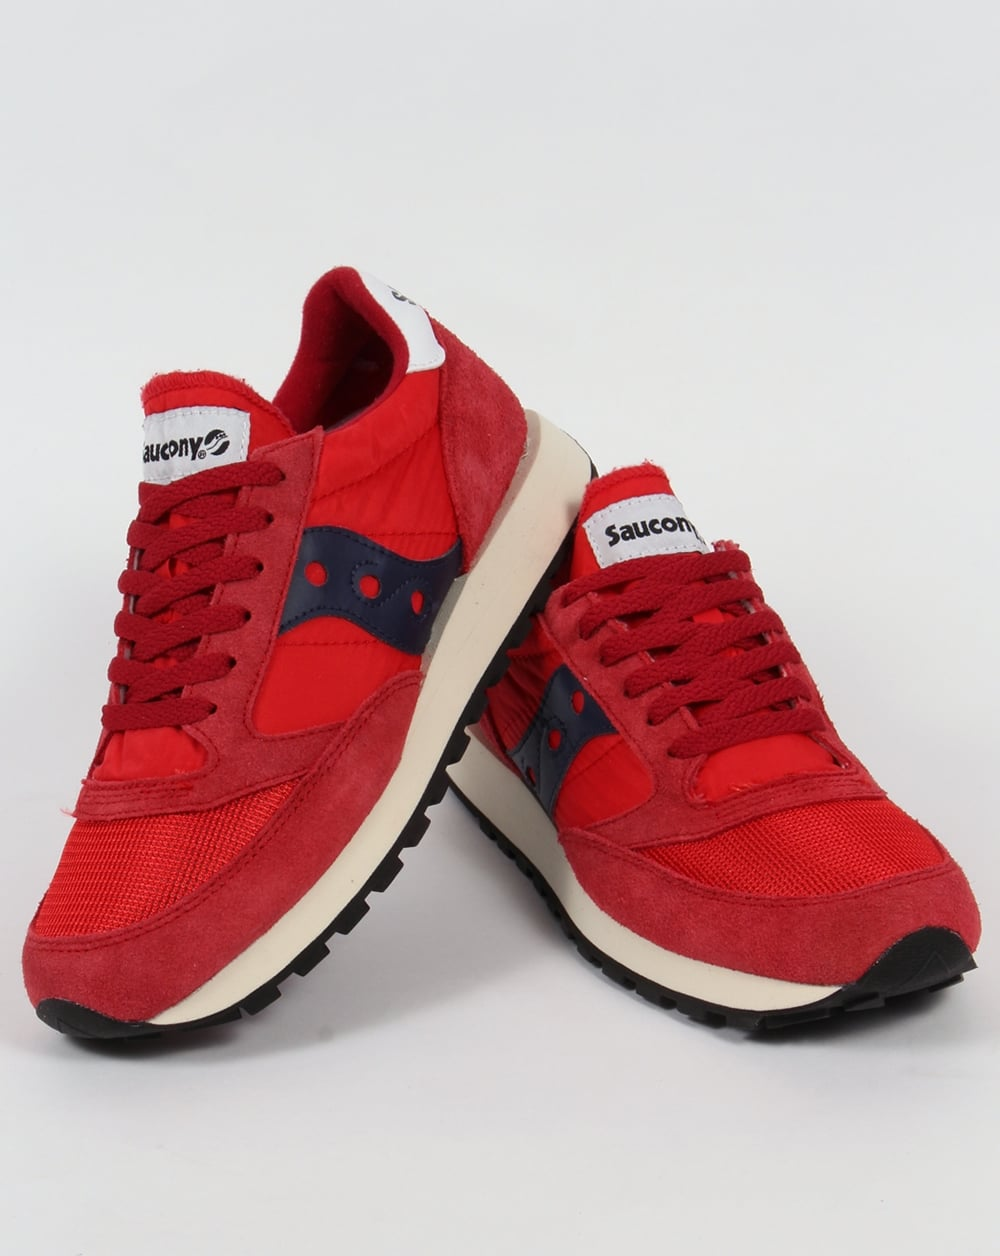 on sale 506bf e30e9 Saucony Jazz Original Vintage Trainers Red/Navy